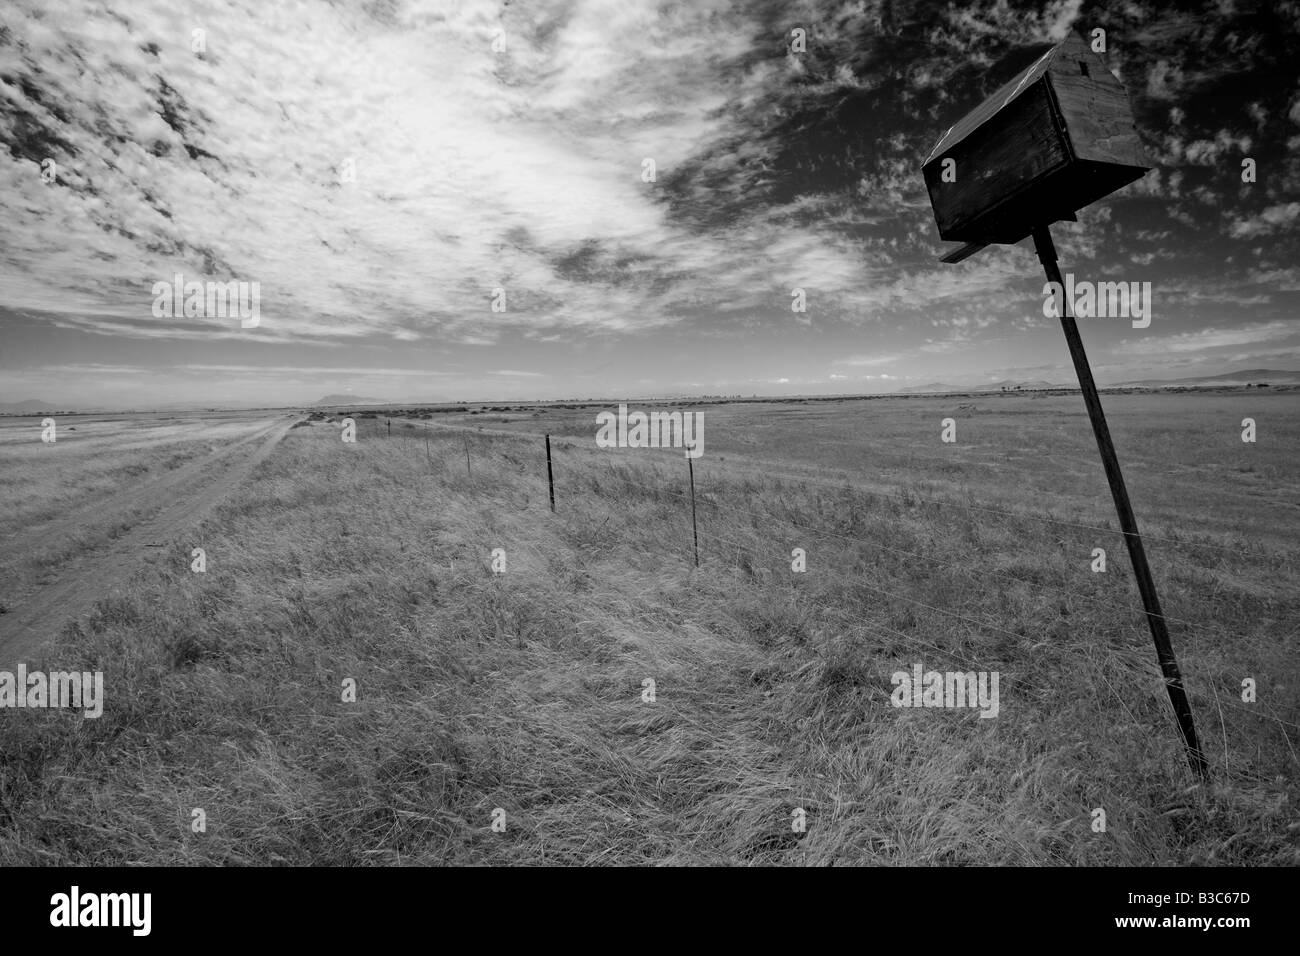 South Africa, Western Cape, Swartland, Darling. An abandoned bird box leaning lazily to one side on farmland near - Stock Image